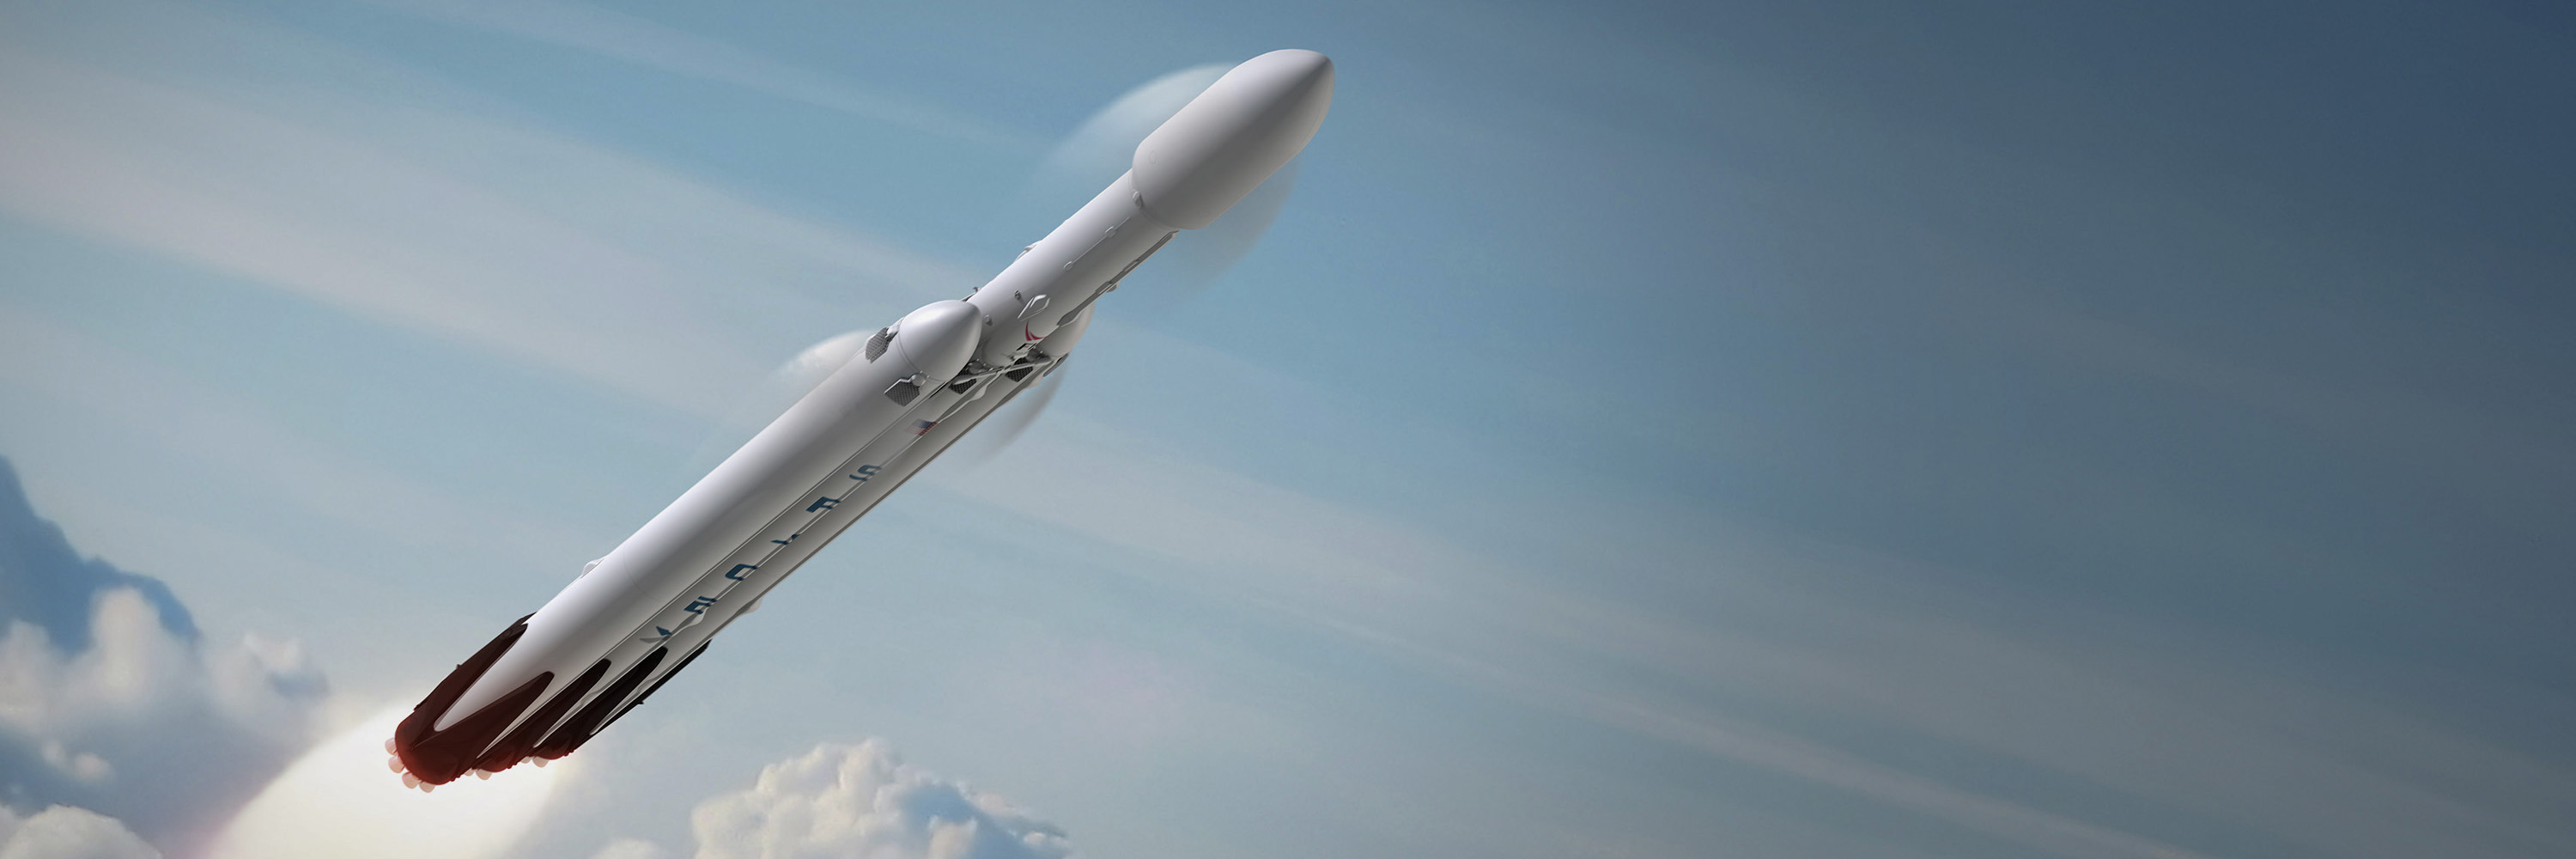 SpaceX, Preparing For Falcon Heavy, Asks For More Landing